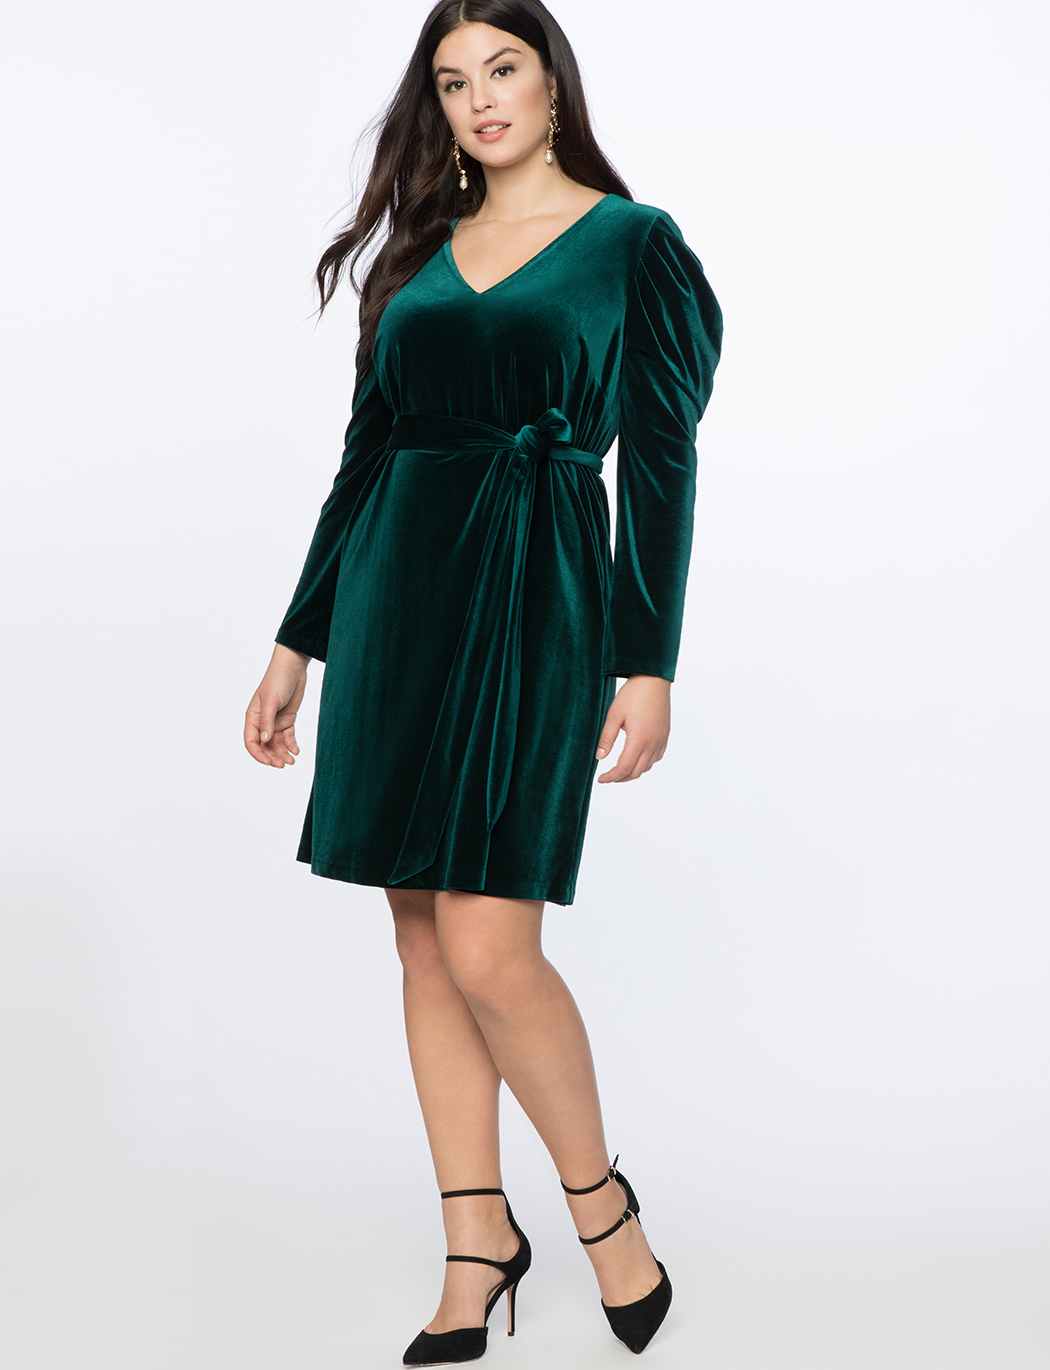 bd942e2e9b5 ... 36fe66cbb4102 Draped Puff Sleeve Velvet Dress | Women's Plus Size  Dresses .